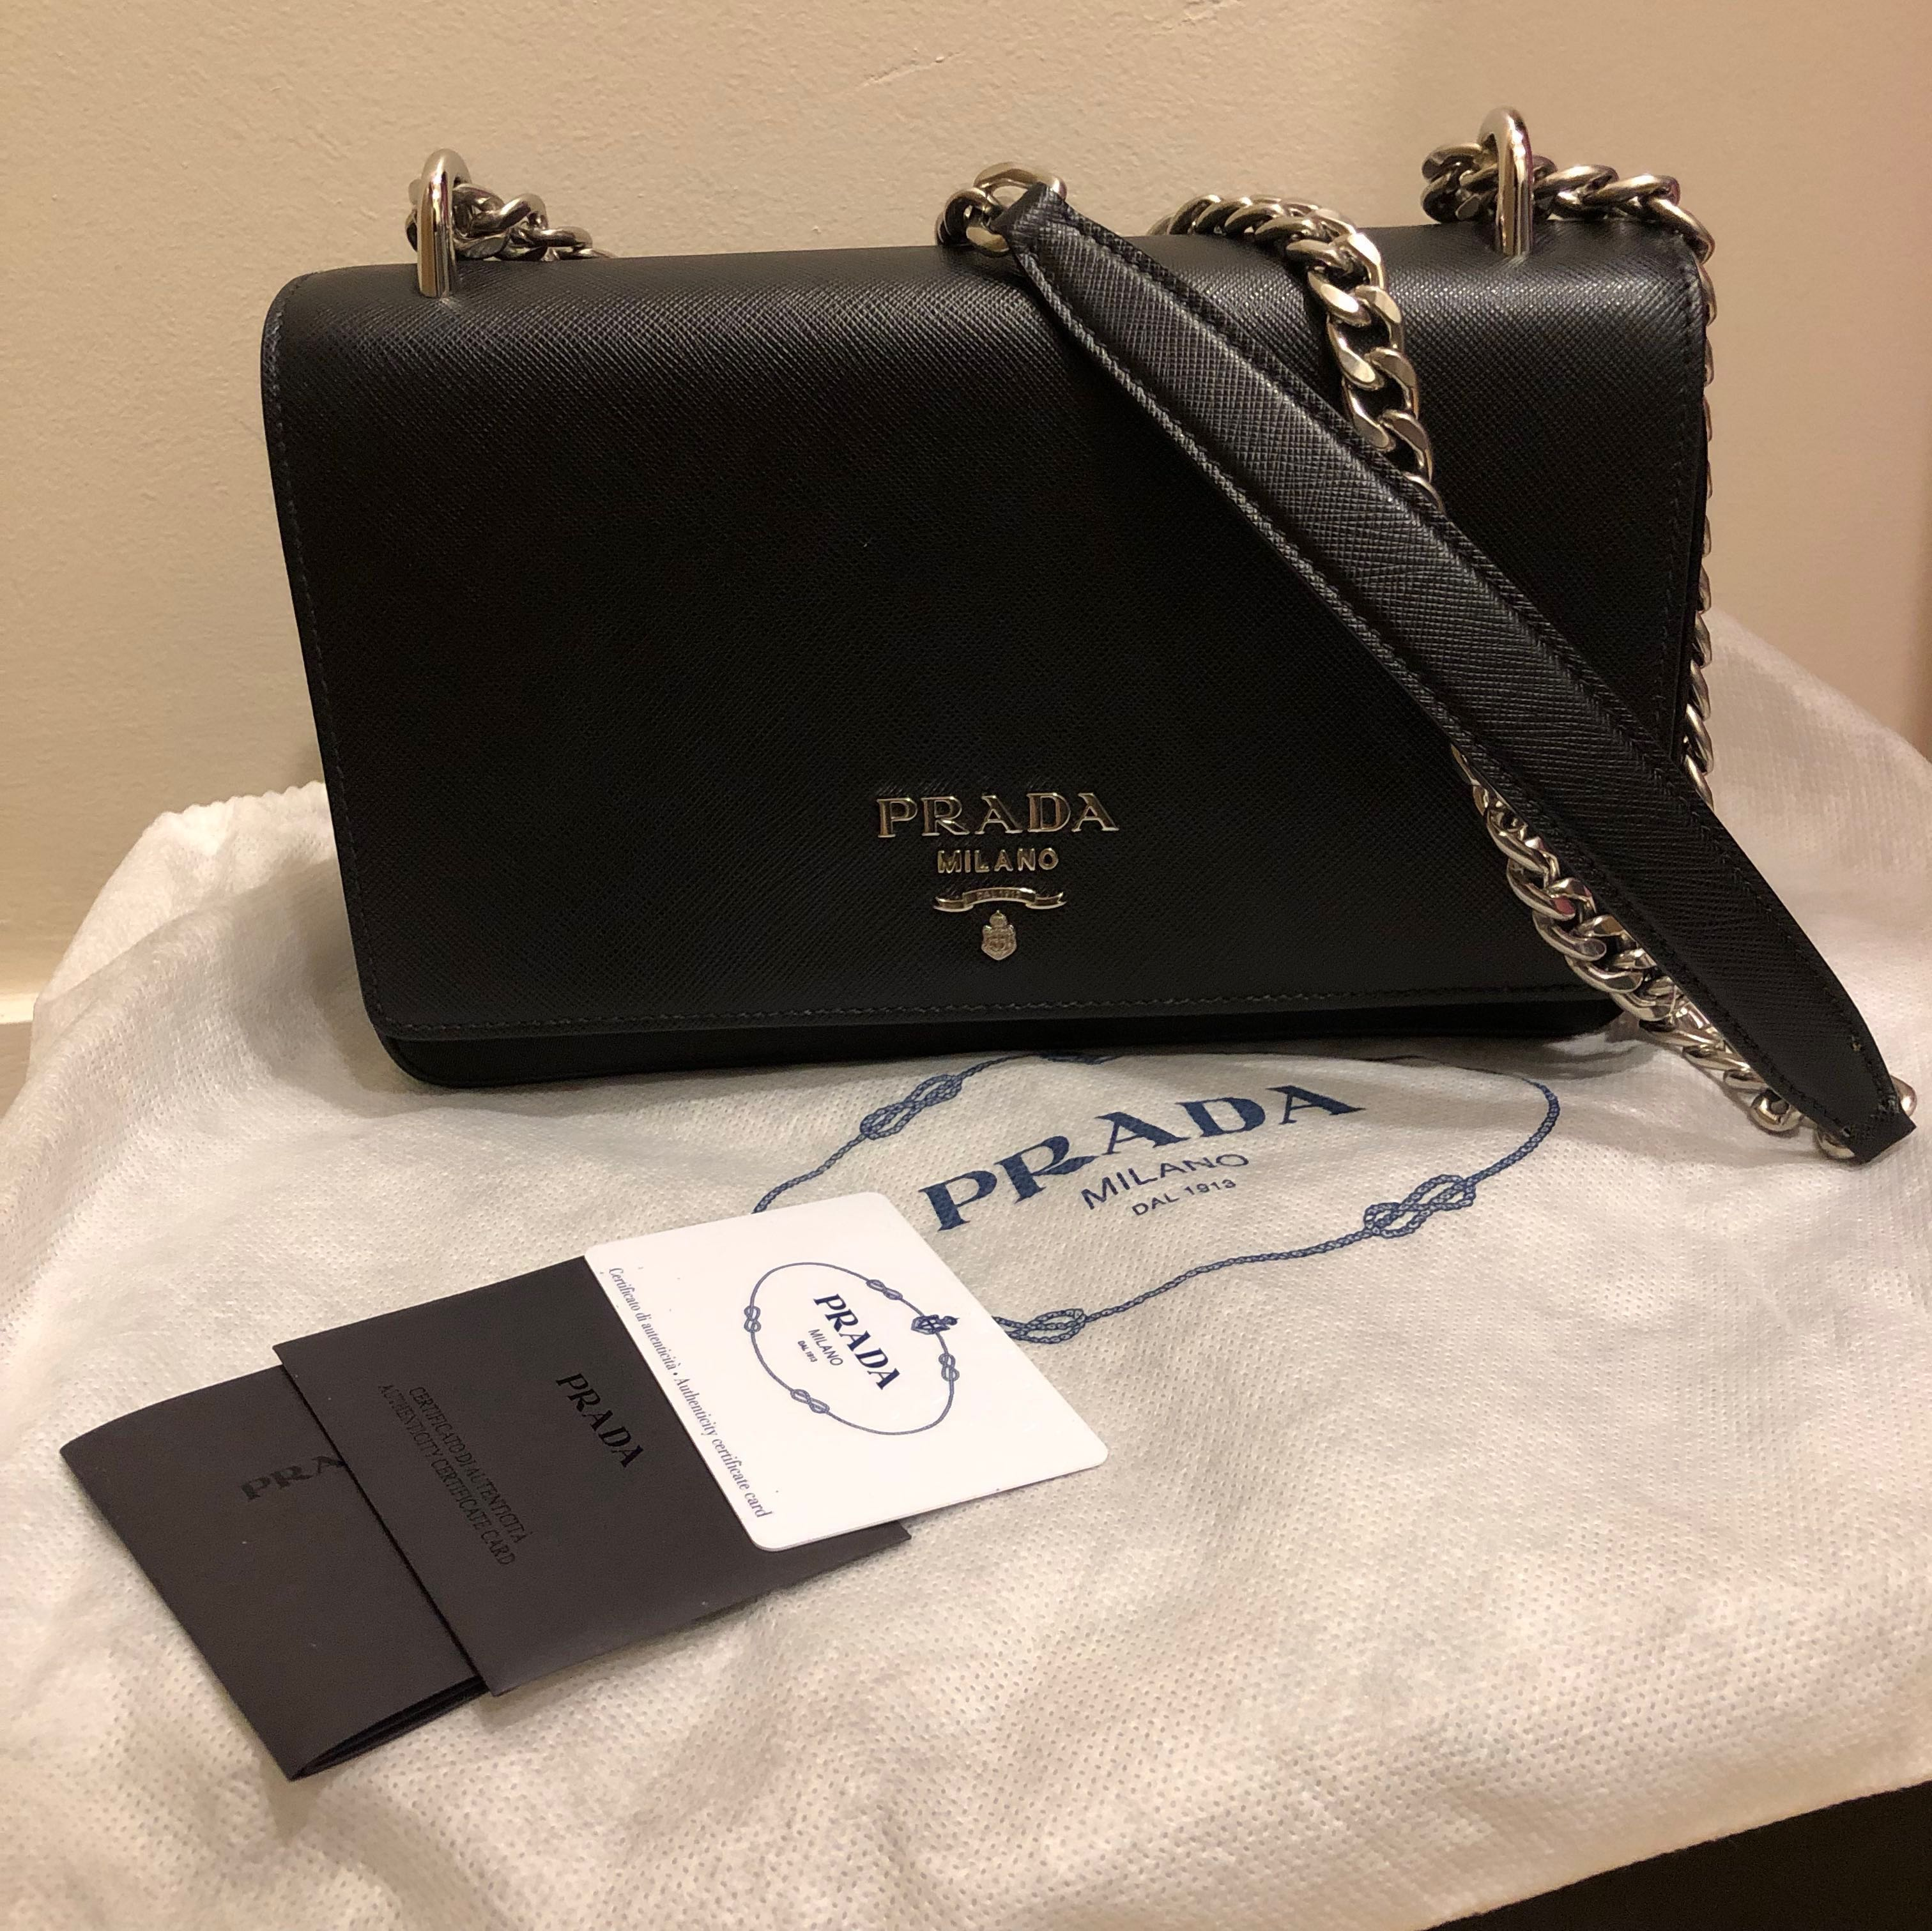 2abbb2d1997a45 Prada Shoulder bag, Luxury, Bags & Wallets, Sling Bags on Carousell